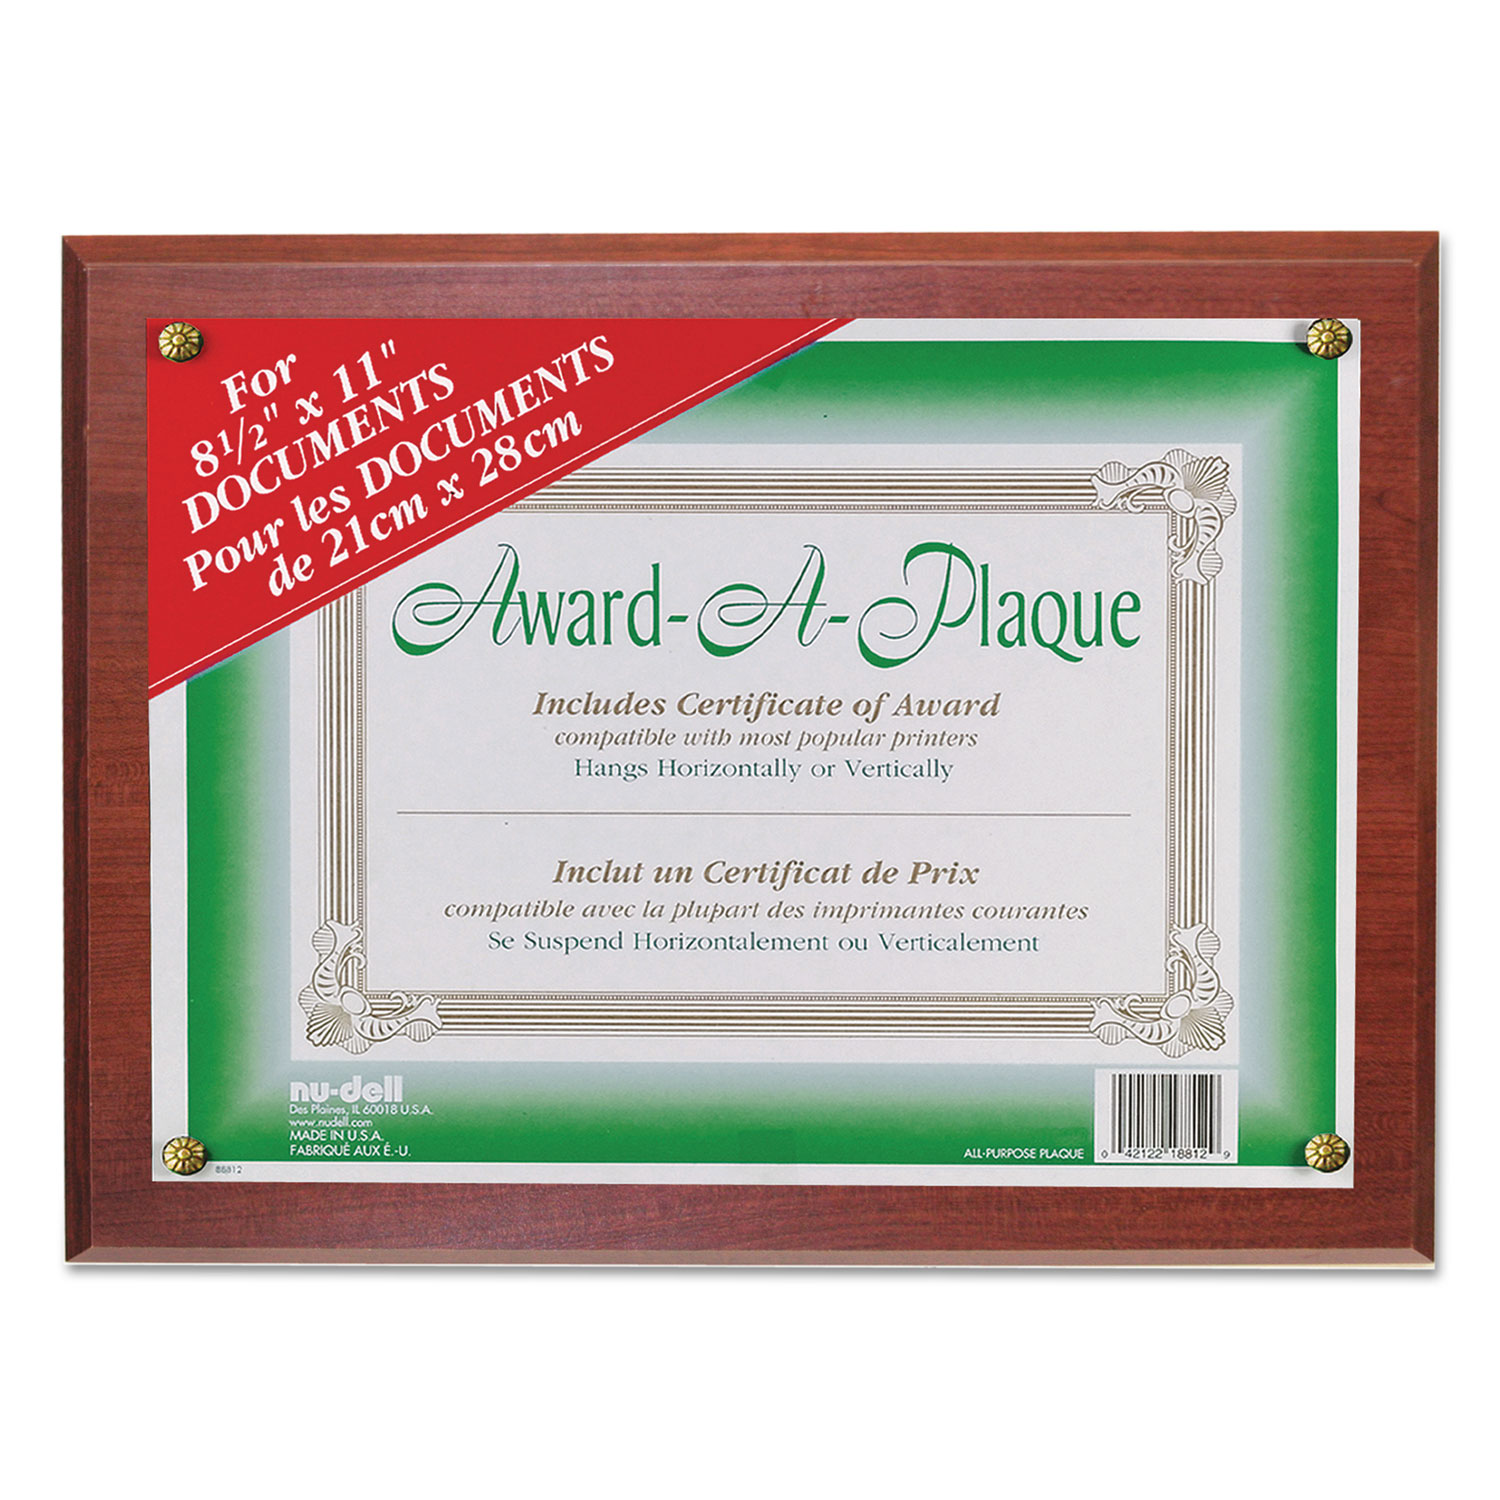 Award-A-Plaque Document Holder by NuDell™ NUD18813M - OnTimeSupplies.com